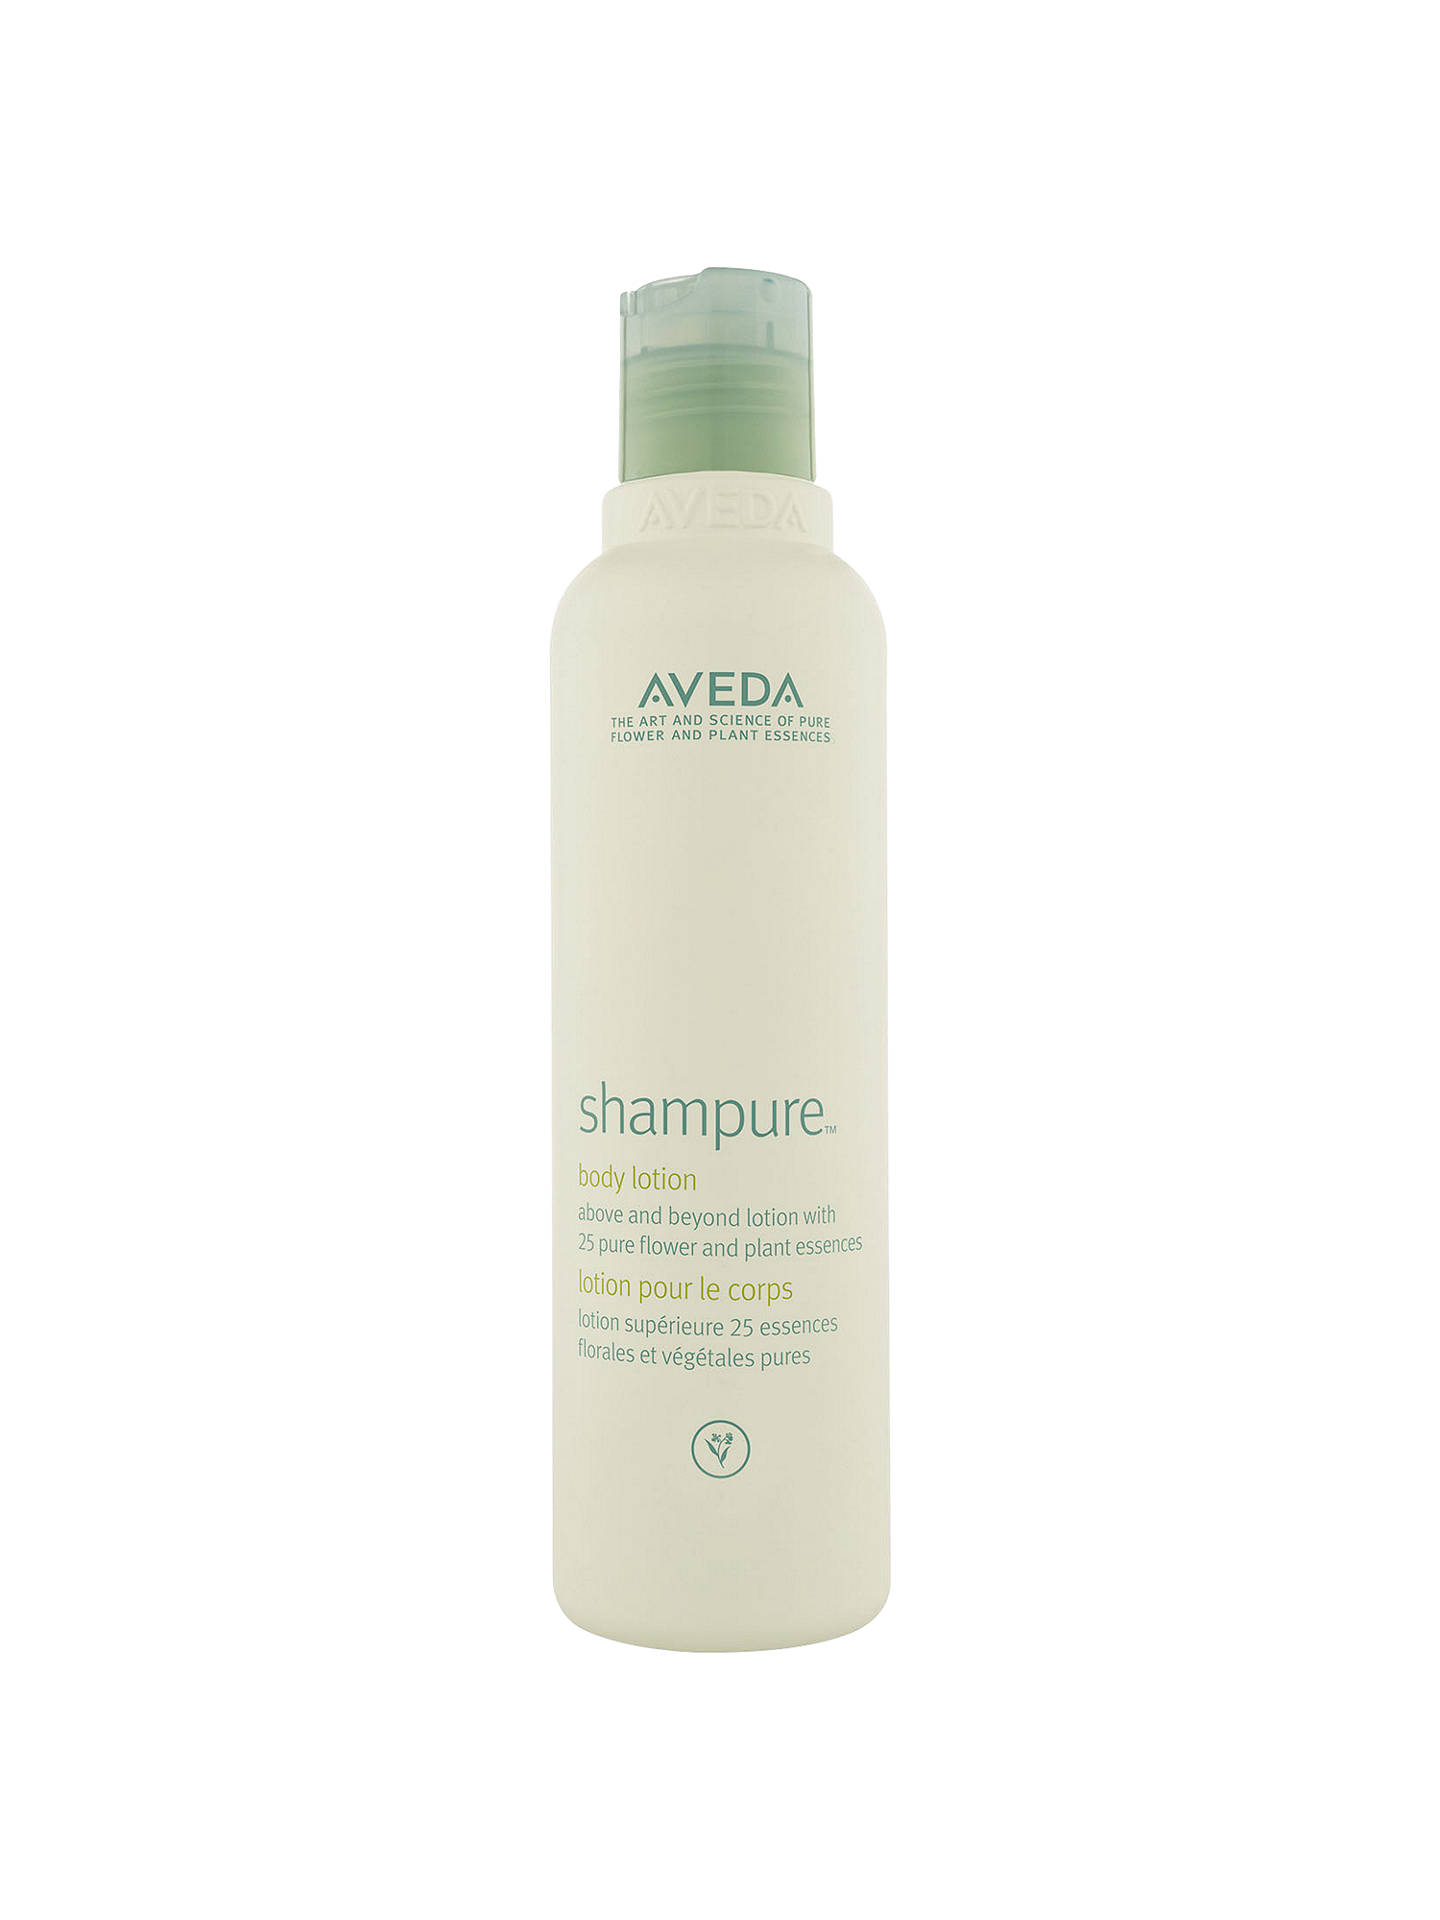 BuyAVEDA Shampure Body Lotion, 50ml Online at johnlewis.com